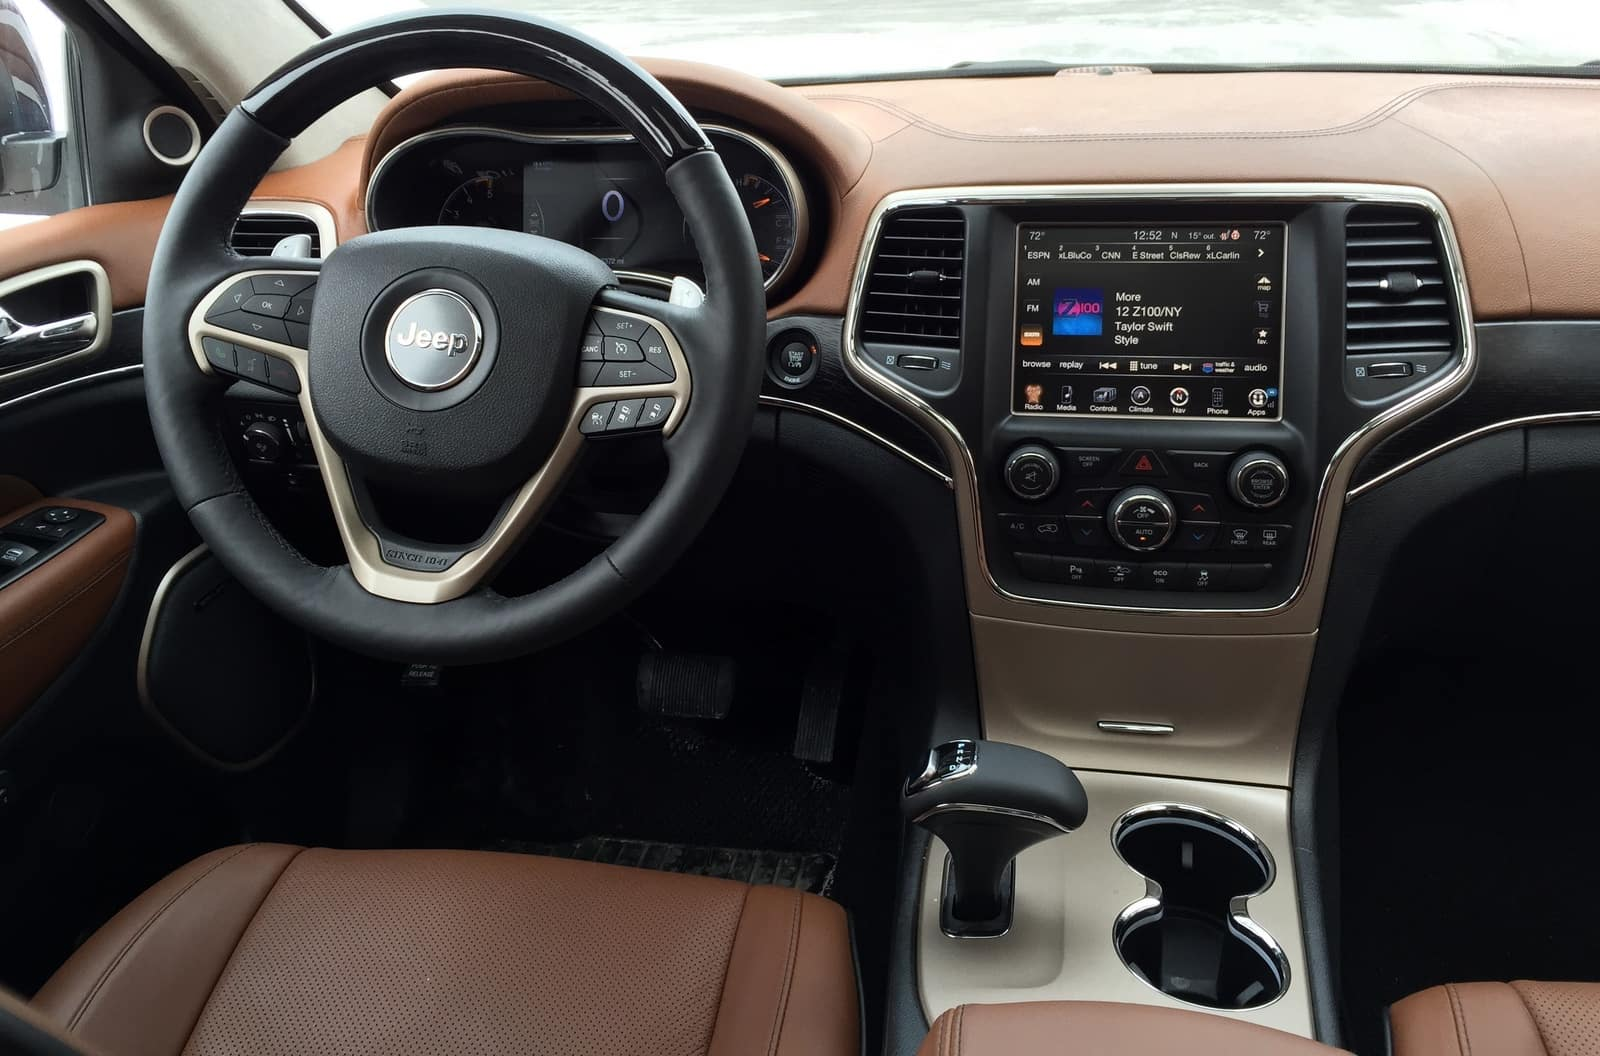 After Nabbing Another Award, This Time The Prestigious WardsAuto 10 Best  Interiors Award In 2014, The 2015 Grand Cherokee Continues To Please With  Its ...